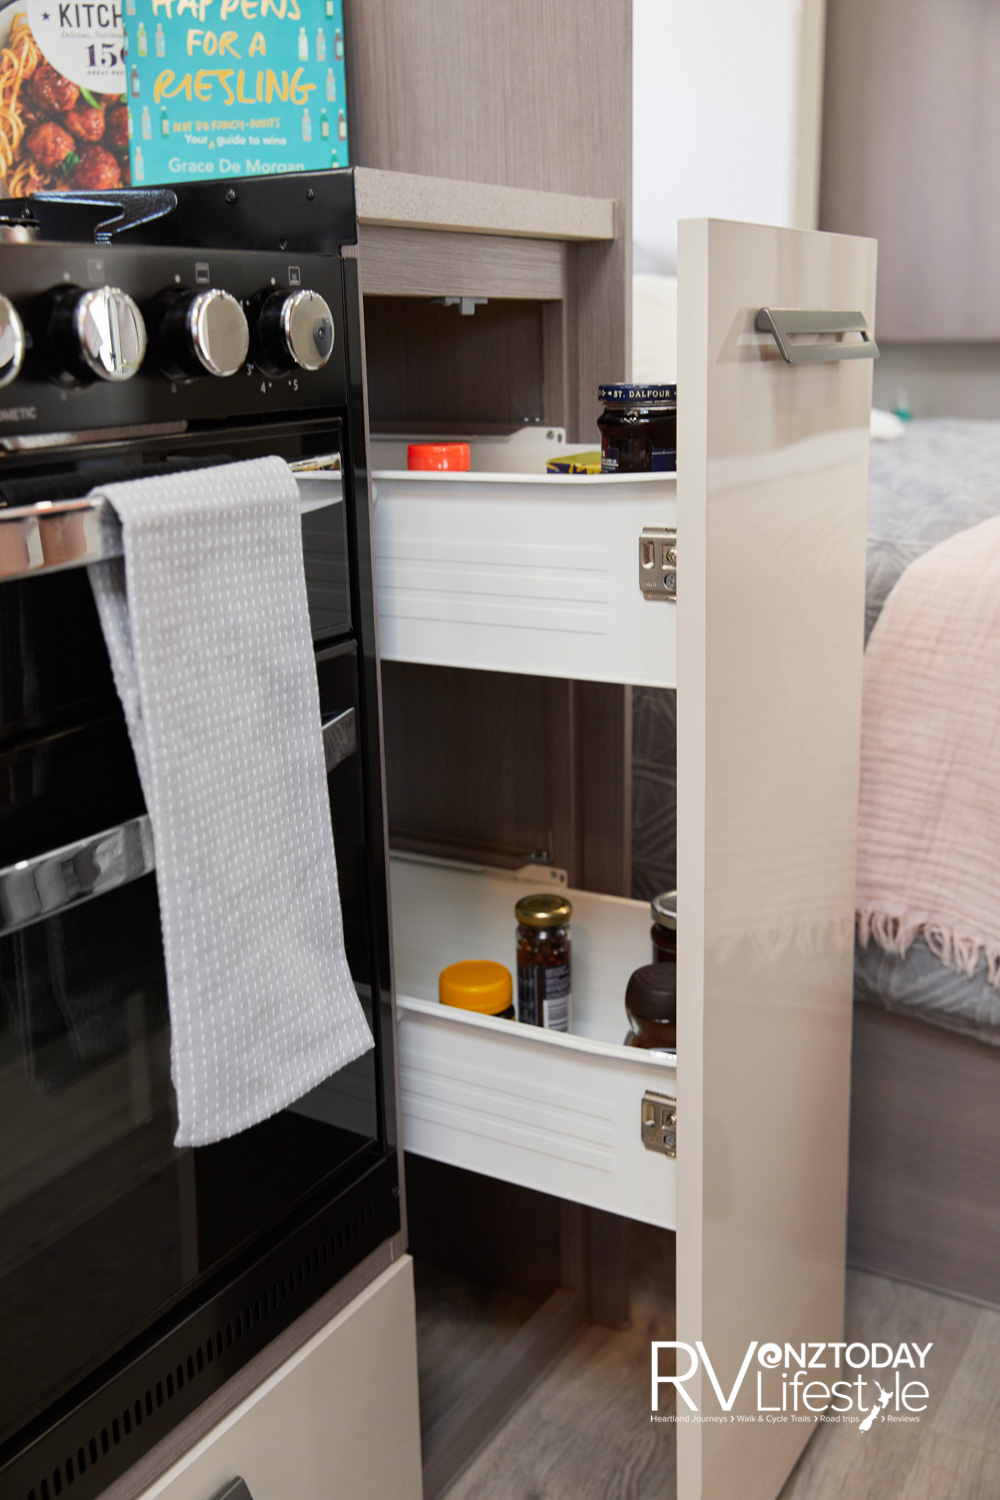 I just love a pull-out pantry unit, there are two in this kitchen